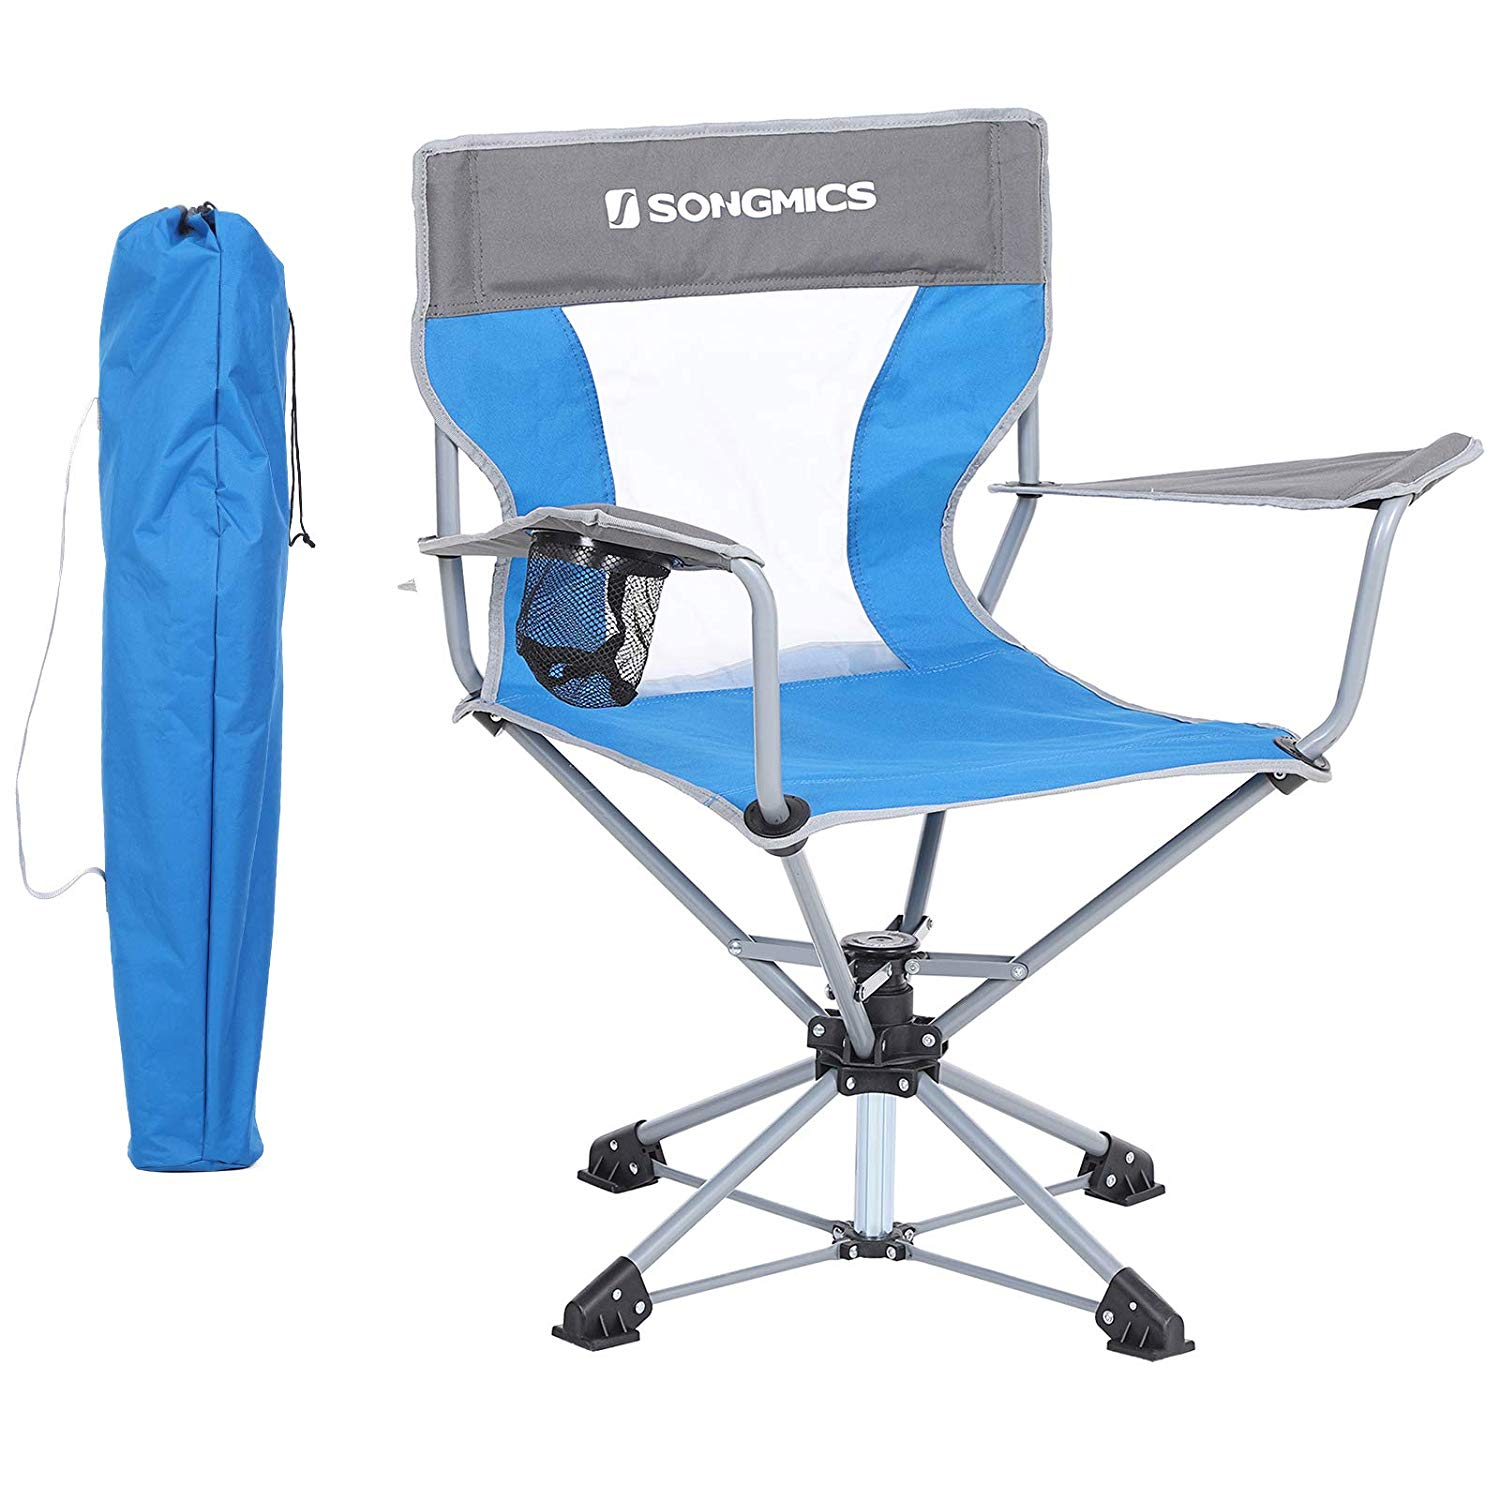 17,09€ SONGMICS Campingstuhl, klappbarer Outdoor Stuhl